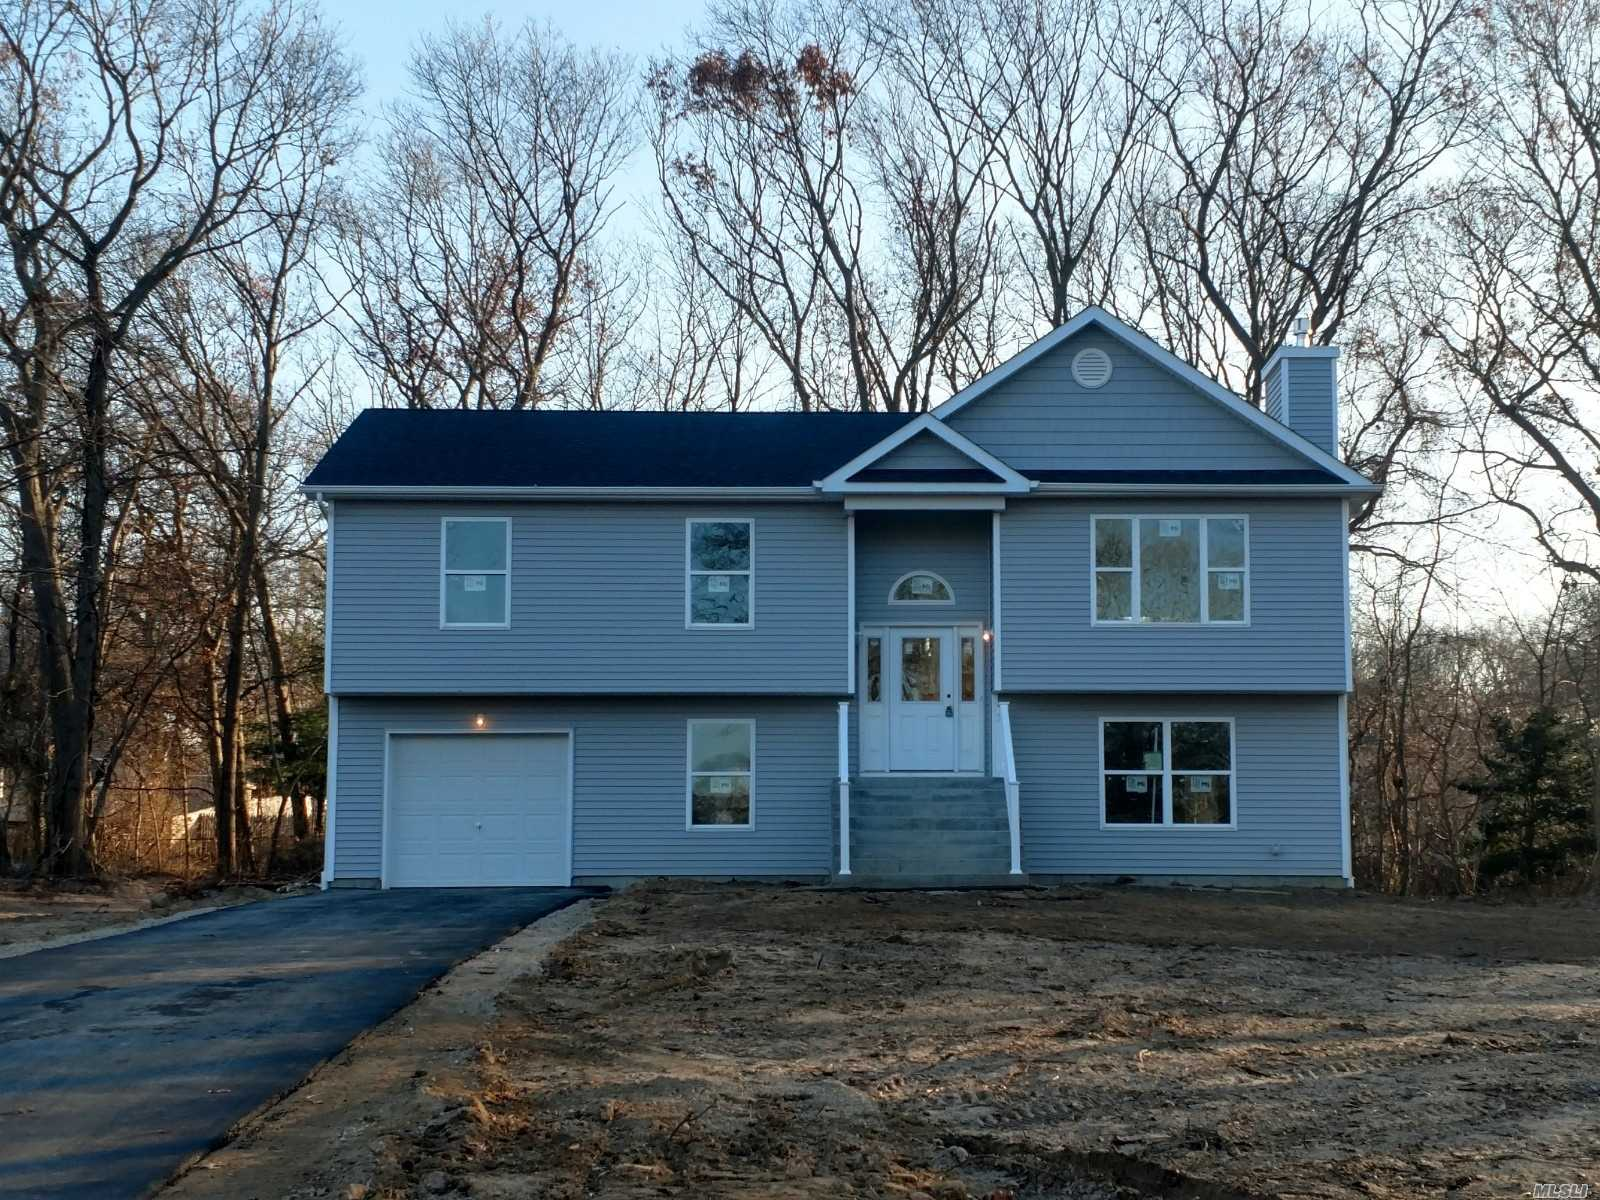 New Construction On Oversized Acre Lot. Features Include: Wood Floors, Stone Kitchen Countertop, S/S Appliances, Full Cac, Gas Heat, And Architectural Roof Shingles, Nice Open Floorplan With Gas Fireplace As Focal Point. Sliders From Formal Dining Room To A Nice Size Rear Wood Deck To Enjoy And Overlook Your Private Acre Of Property! Buy New Construction For The Tax Benefit!!